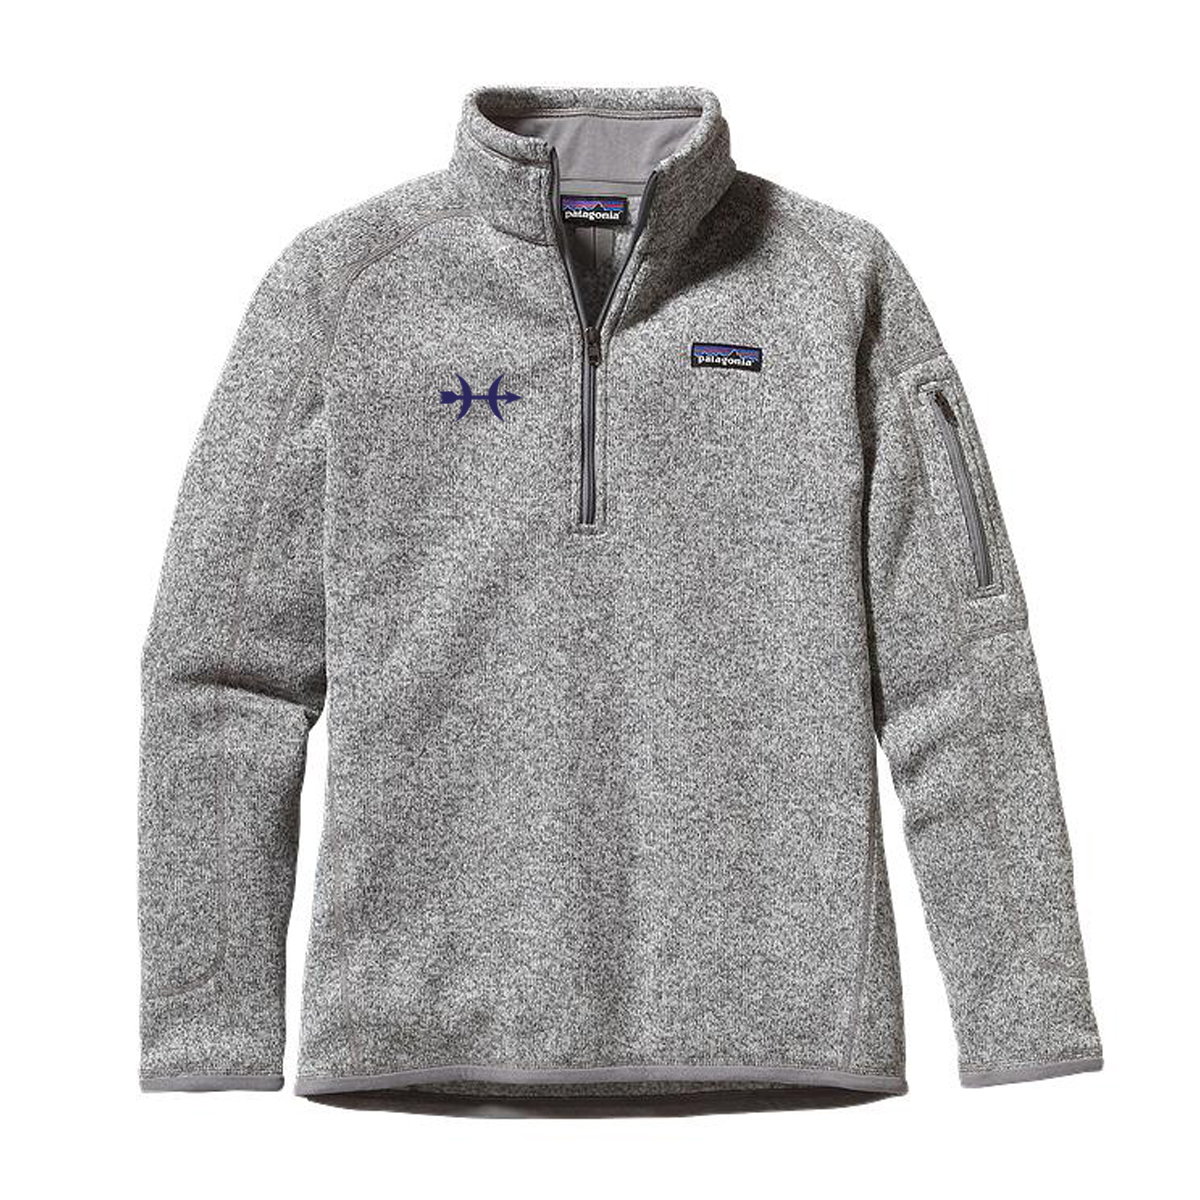 Hunt Yachts- W's Patagonia Better Sweater 1/4 Zip